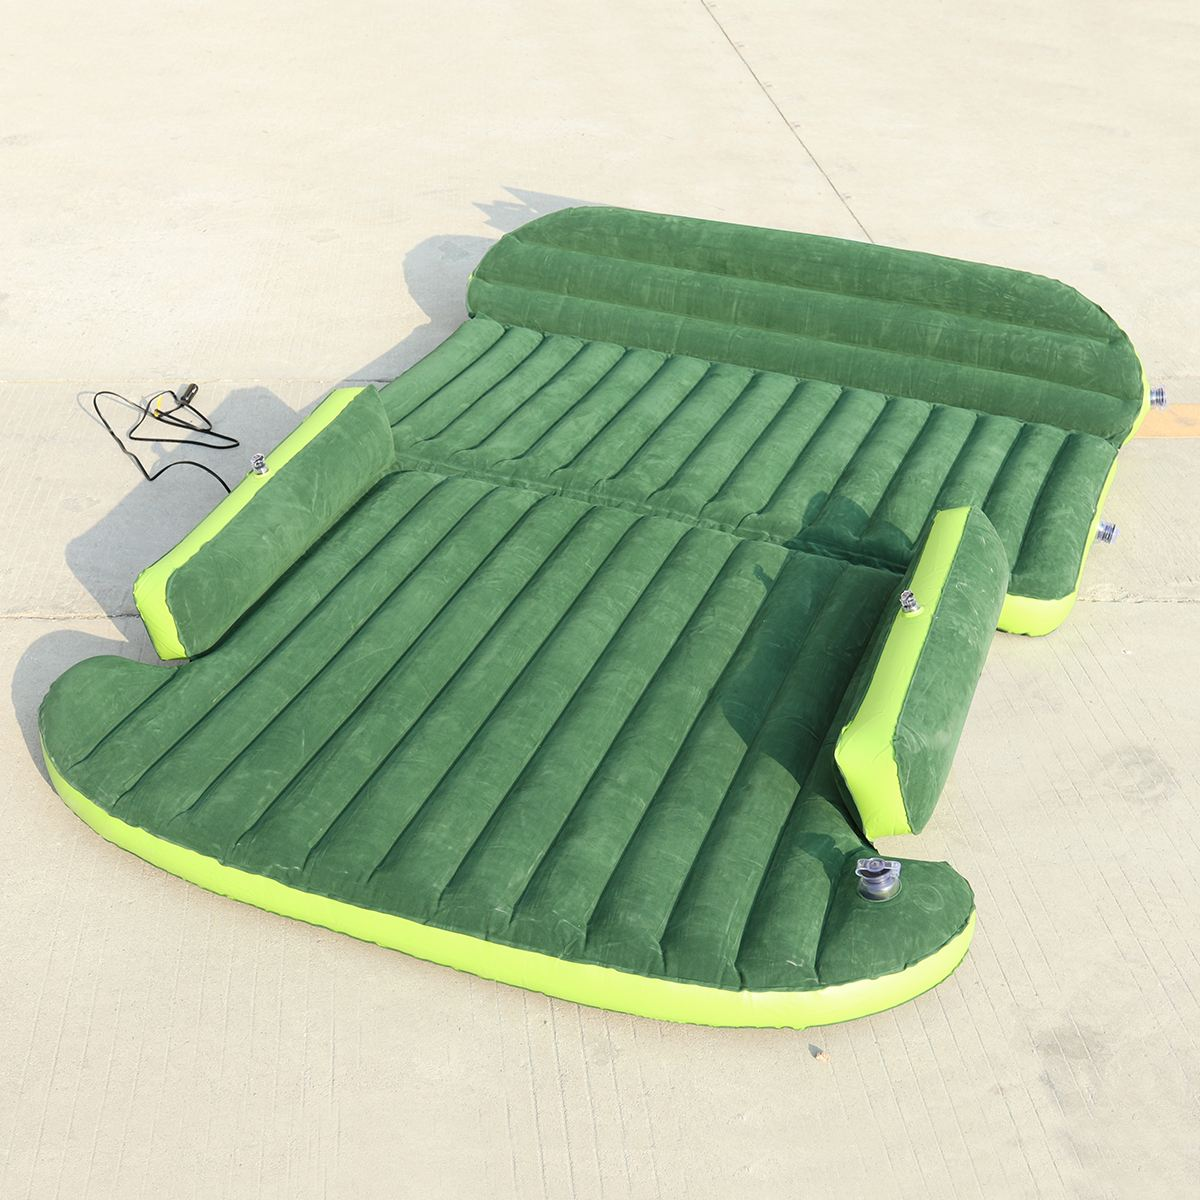 Car Travel Bed Inflatable Mattress SUV Bed Camping Back Seat Extended Mattress PVC Flocking Bed For Couples car air mattress travel bed car back seat cover inflatable mattress air bed good quality inflatable car bed for camping khaki